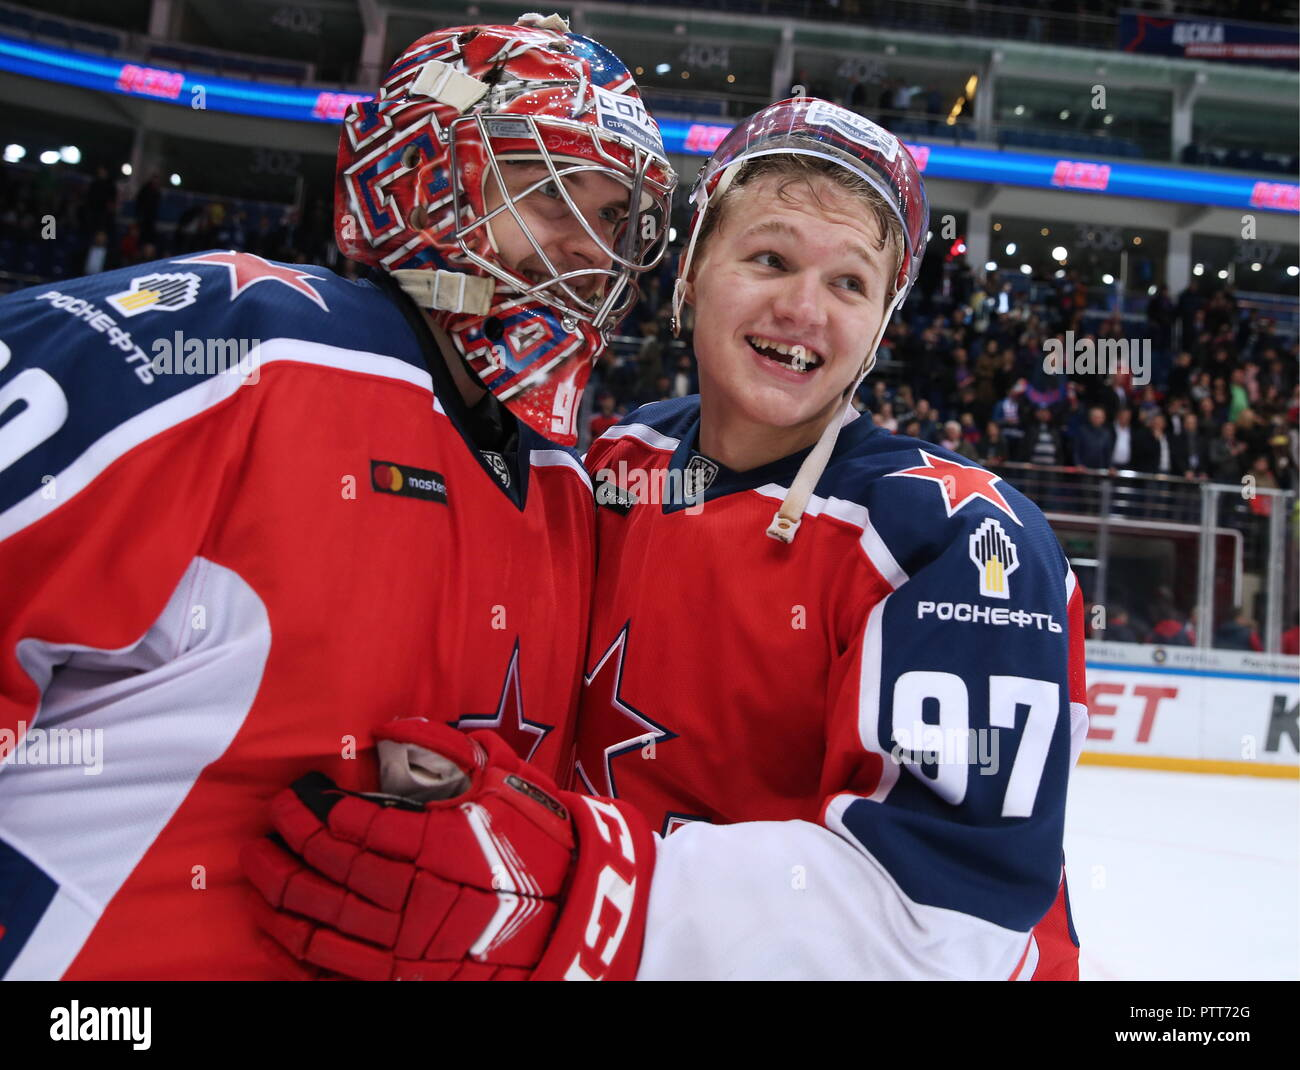 KHL in 2018-2019 year: teams, schedule, start of the season 32